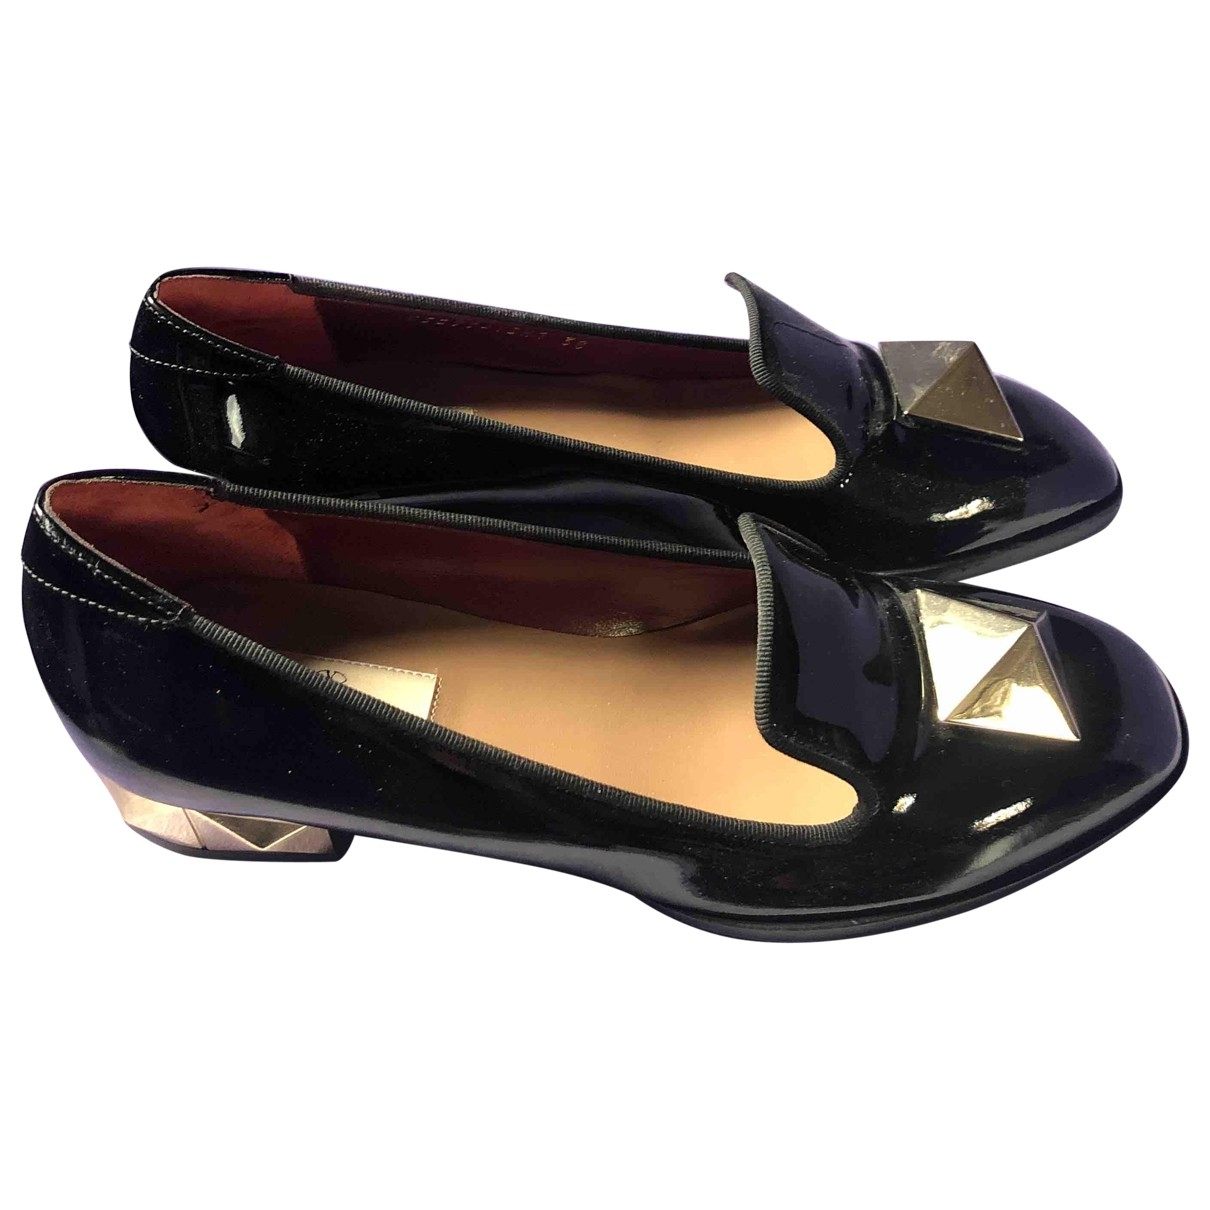 Valentino Garavani \N Black Patent leather Flats for Women 38 EU